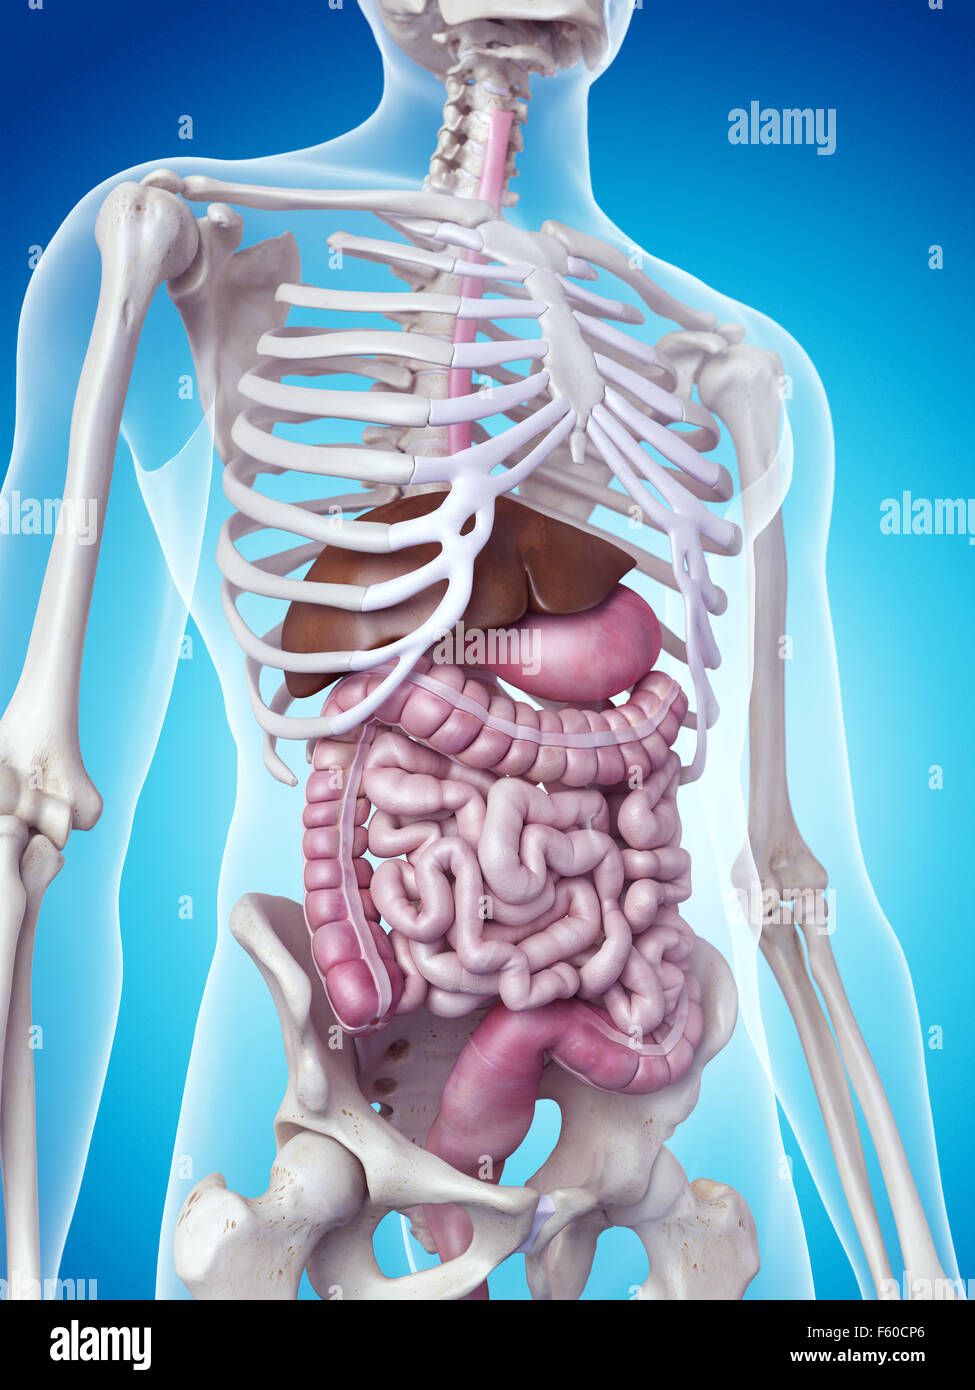 medium resolution of medically accurate illustration of the digestive system stock image